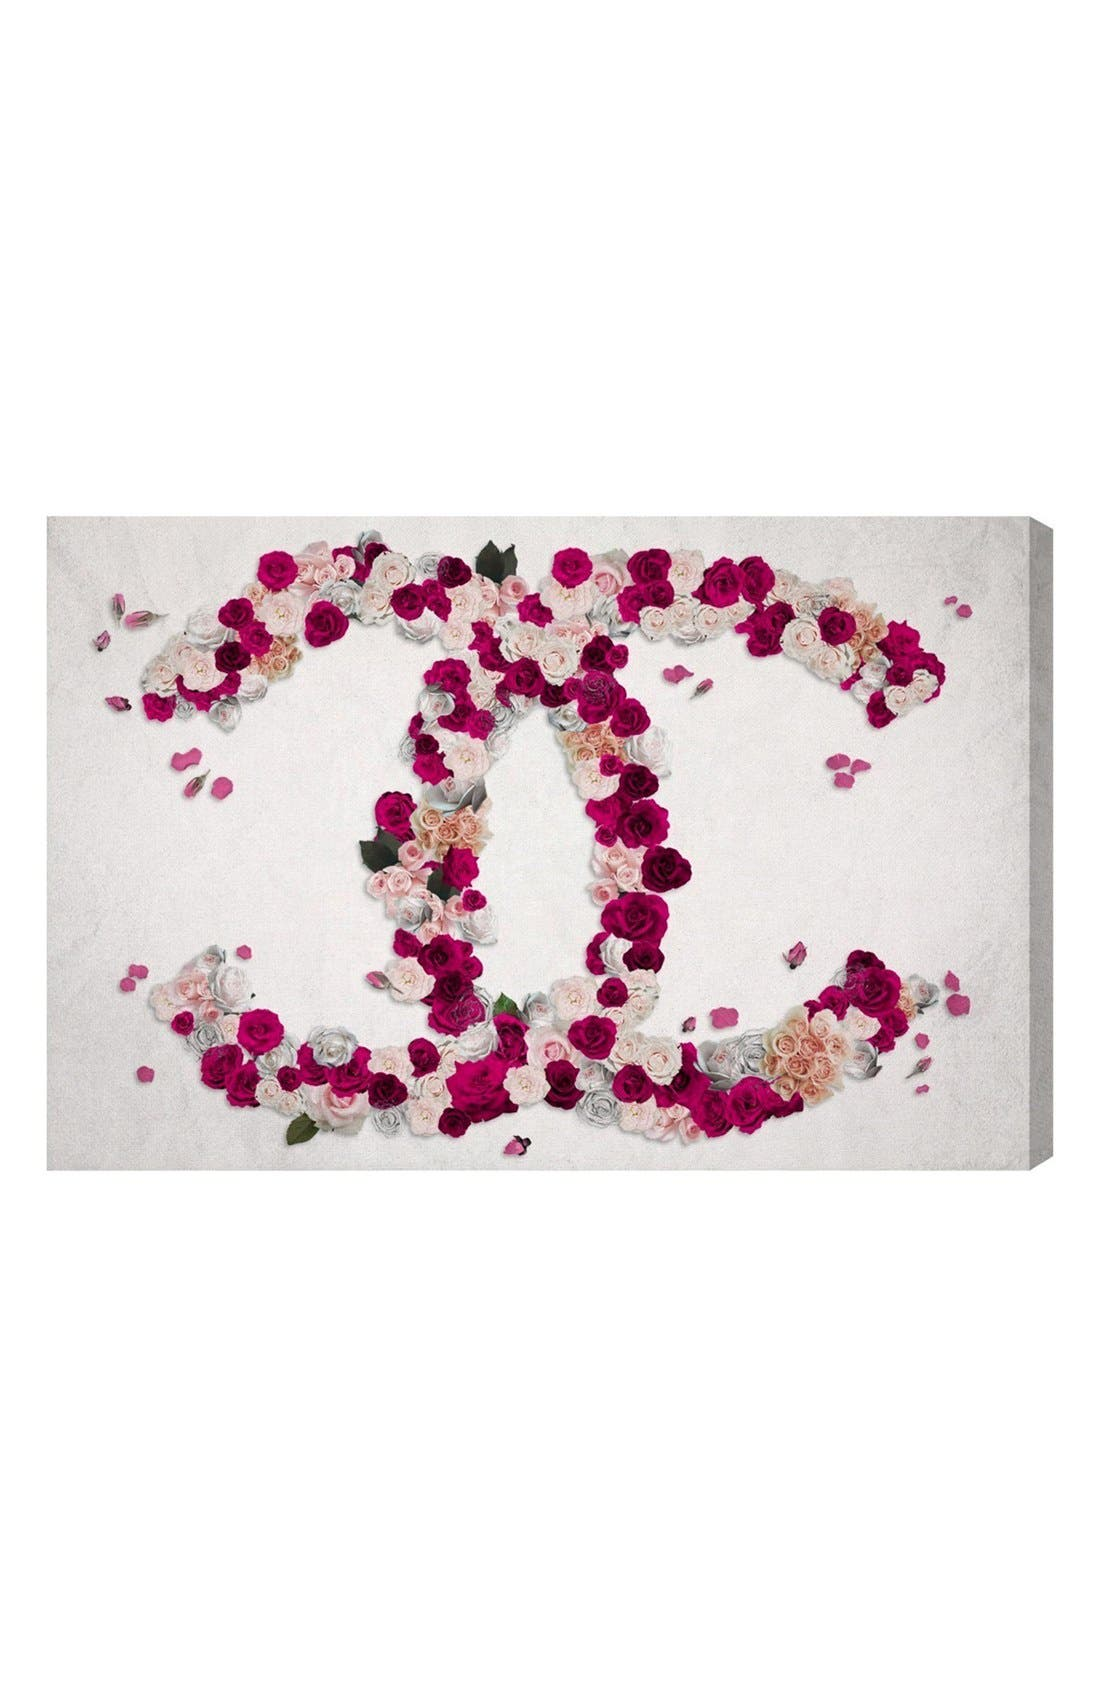 Main Image - Oliver Gal 'Dreaming Beauty' Canvas Wall Art